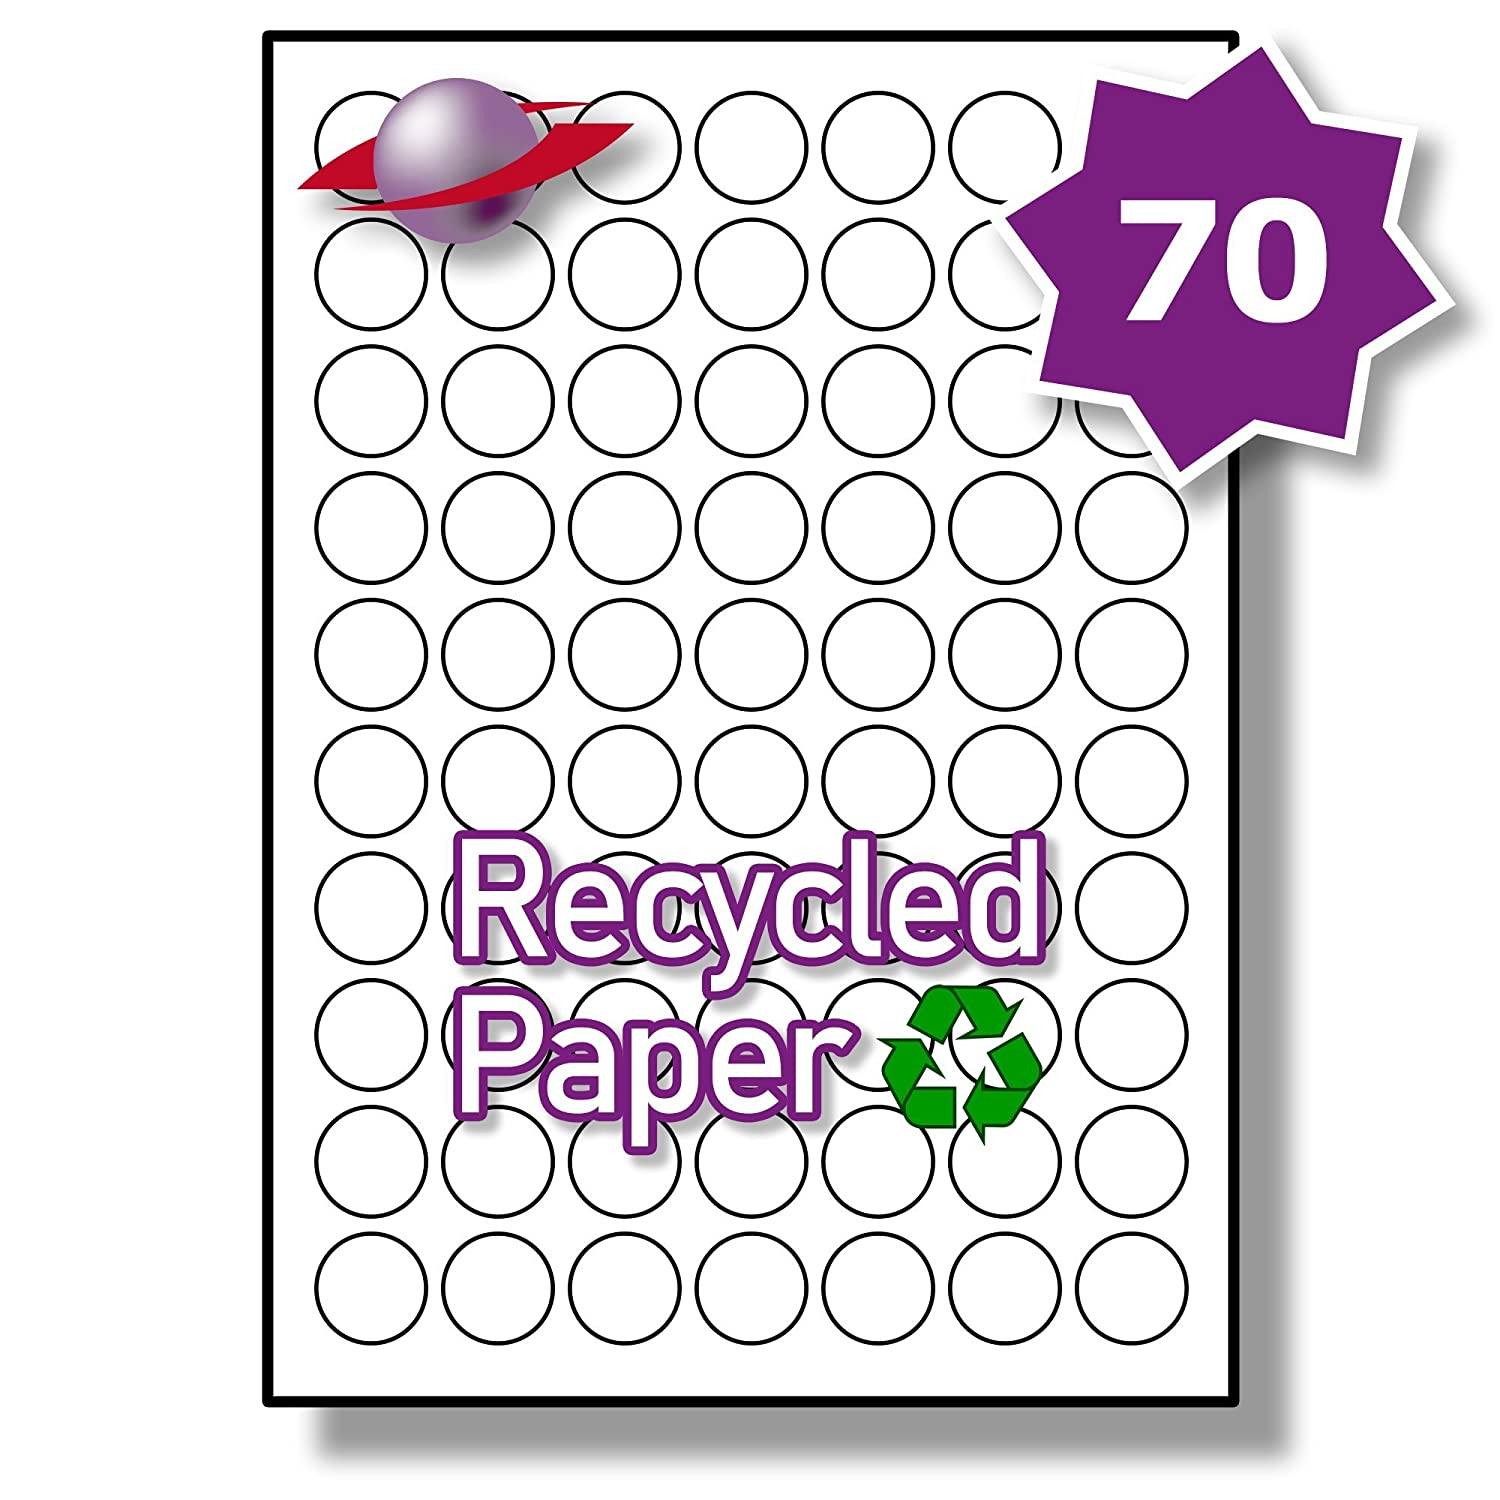 70 Per Sheet 5 Sheets 350 RECYCLED ROUND Labels Label PlanetR Plain White Round Paper 25mm Diameter LP70 25 RRCY Amazoncouk Office Products